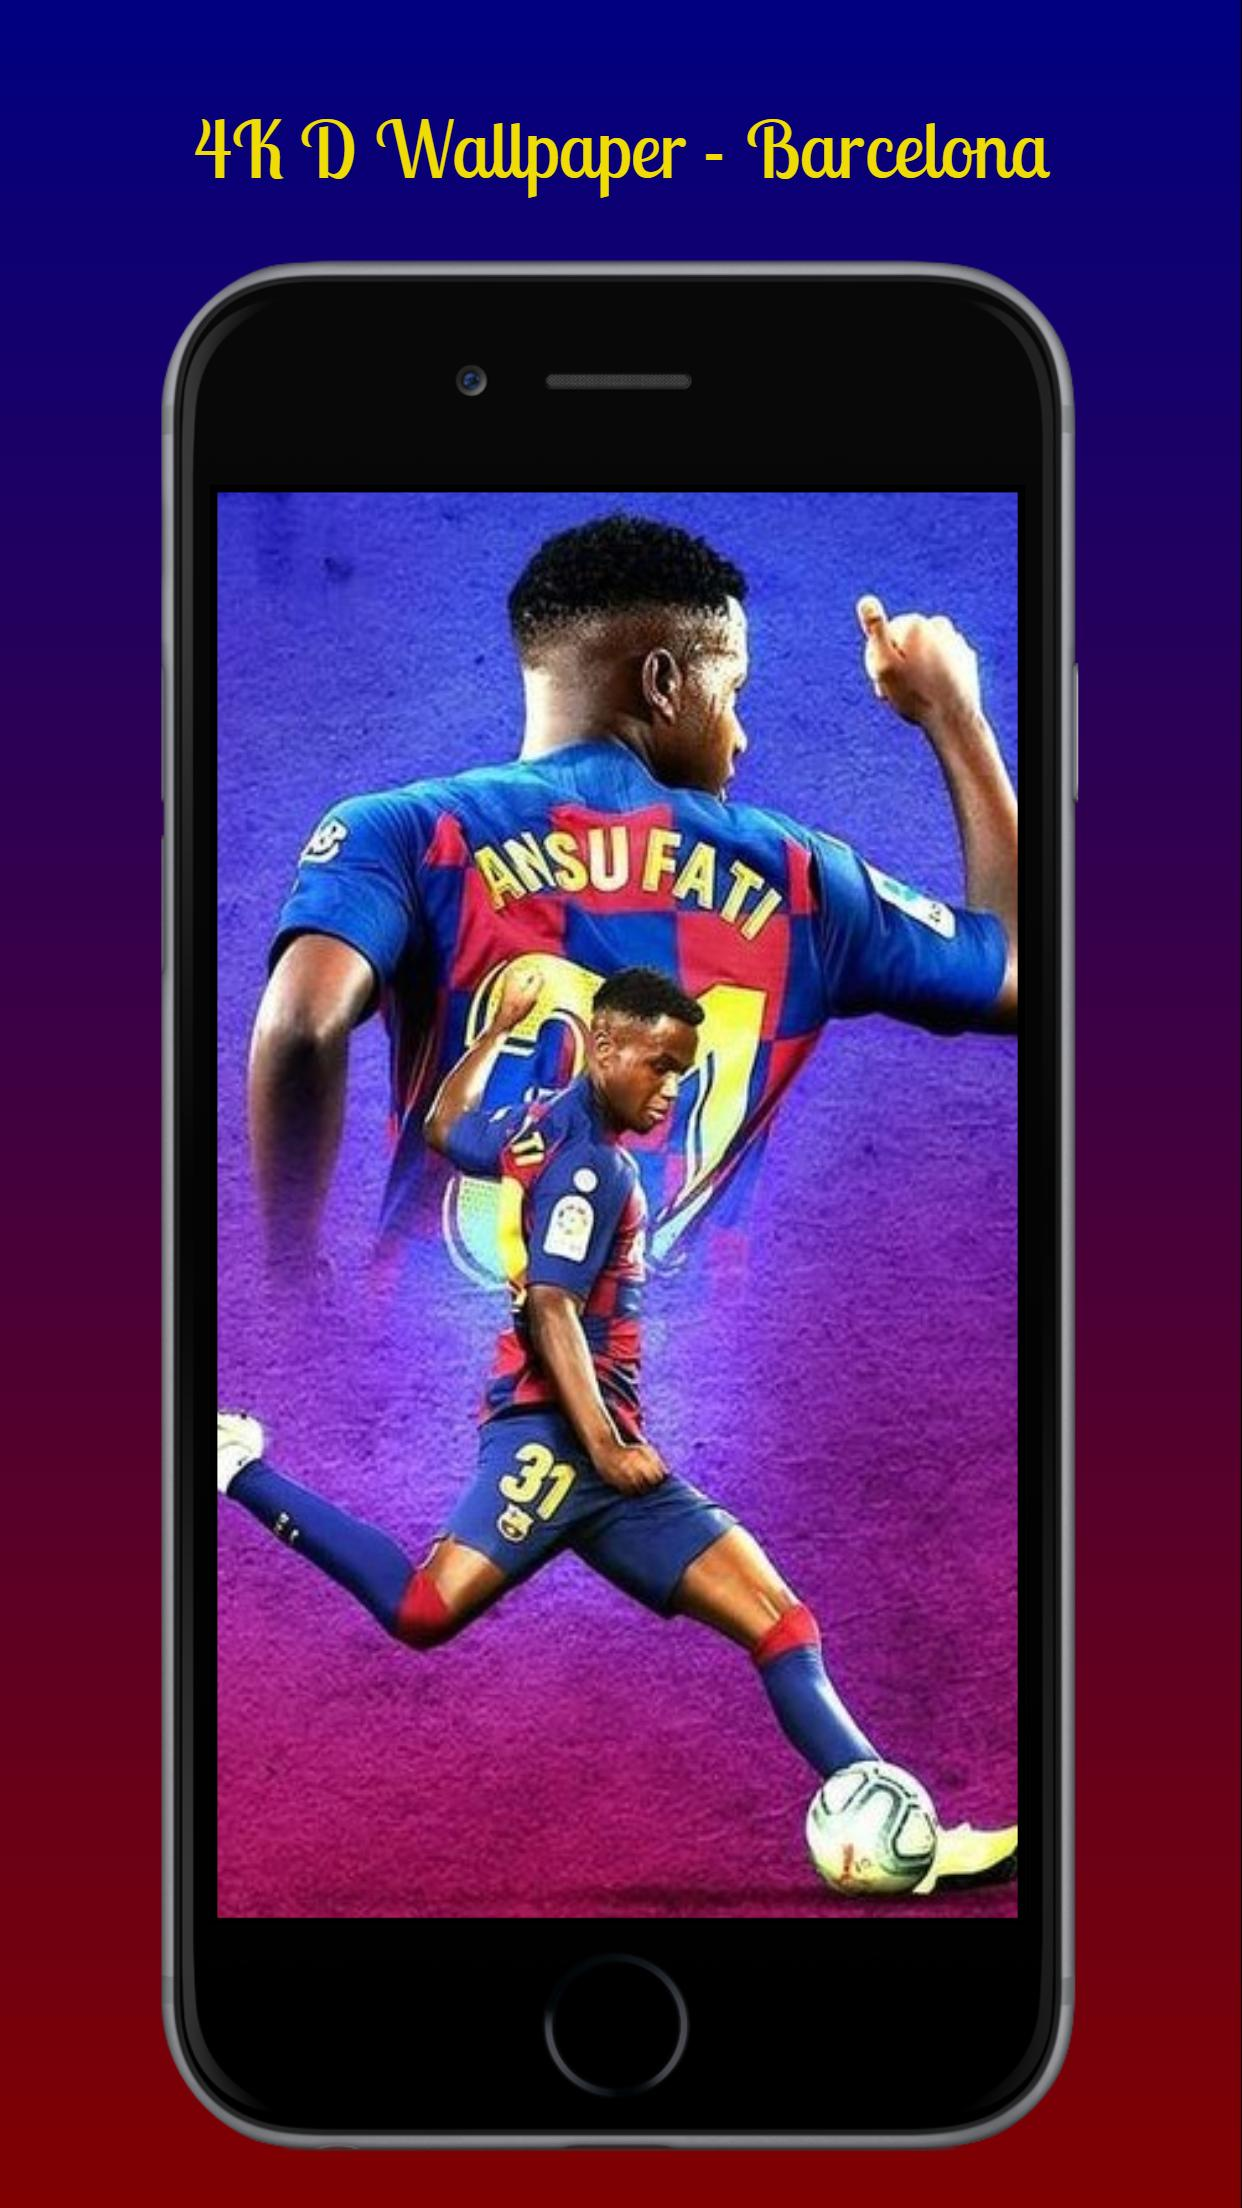 Foot Ball Wallpaper 4K│HD Barcelona For Android APK Download